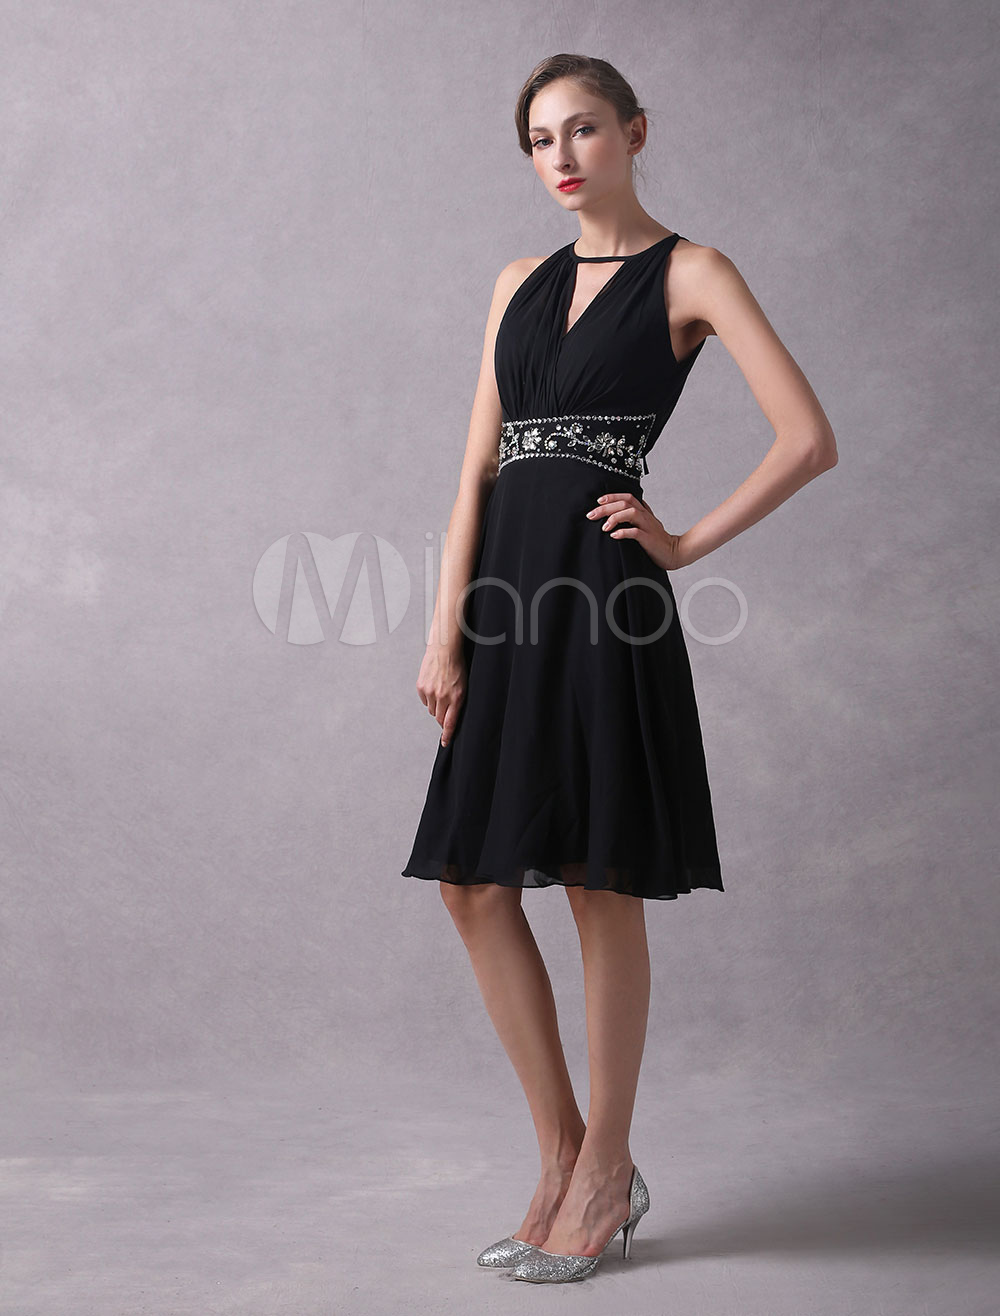 Little Black Dresses Chiffon Short Cocktail Dress Halter Ribbon Beaded Knee Length Wedding Guest Dress